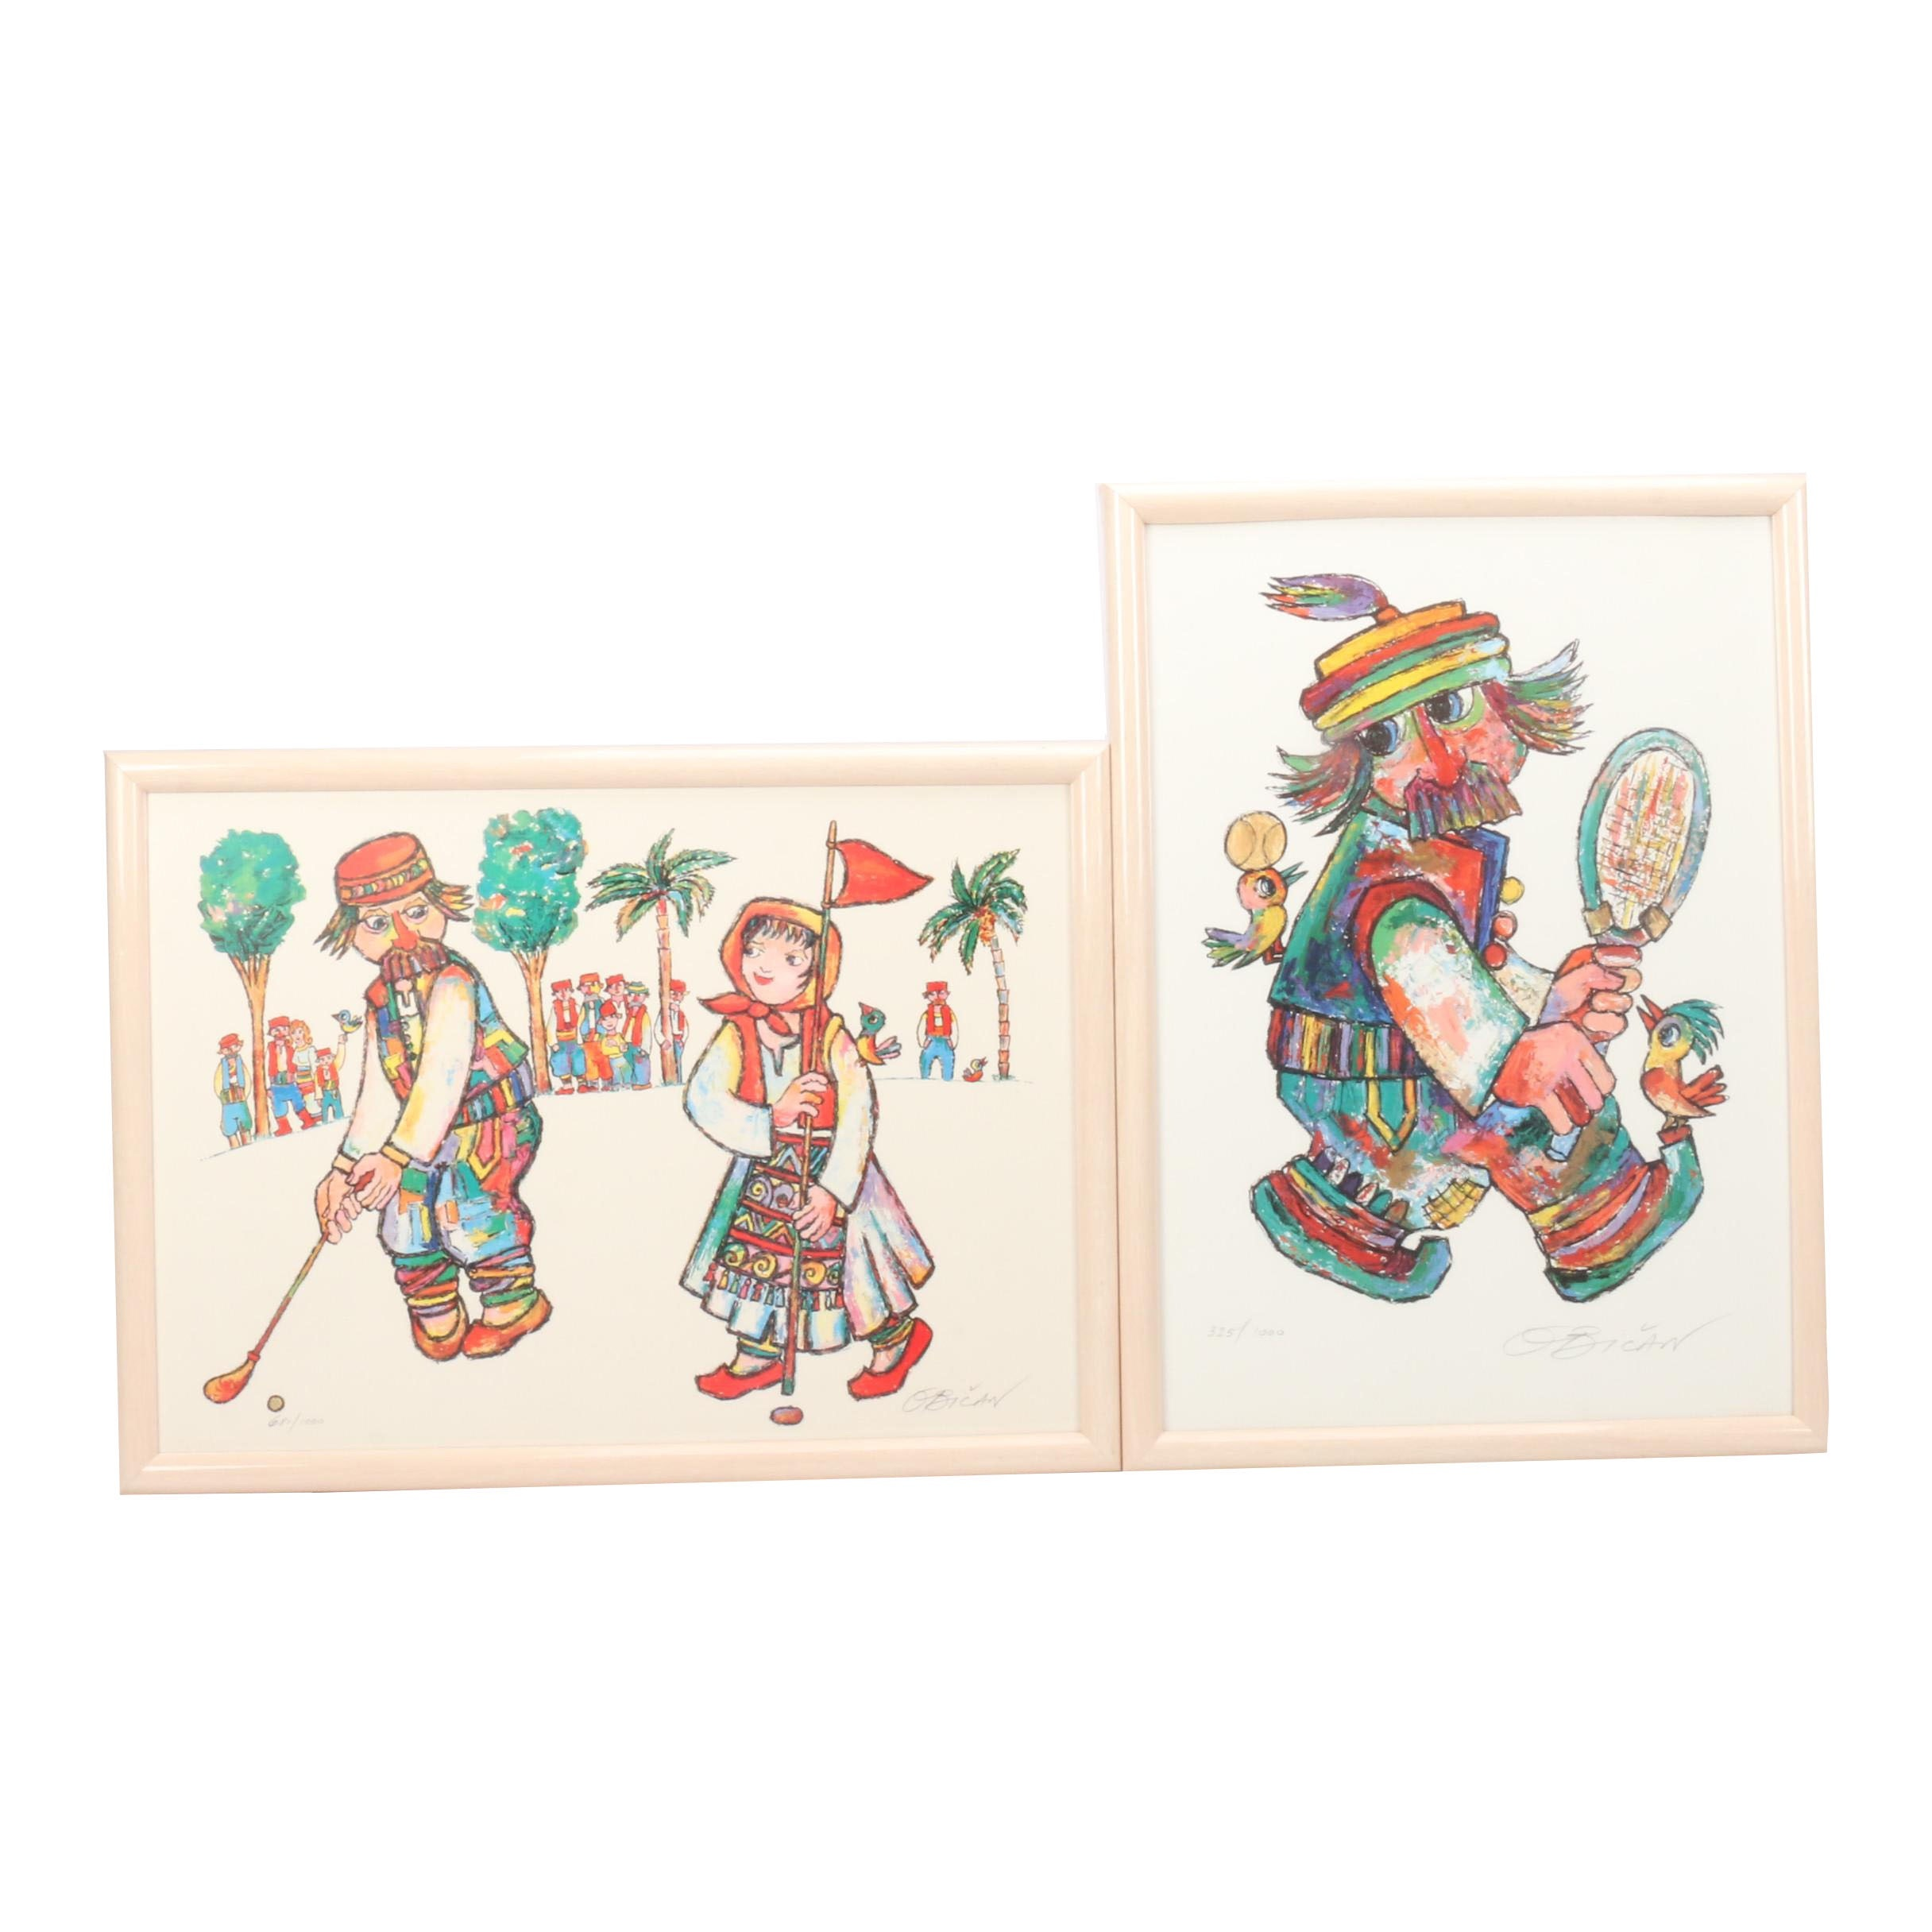 Pair of Jovan Obican Limited Edition Offset Lithographs